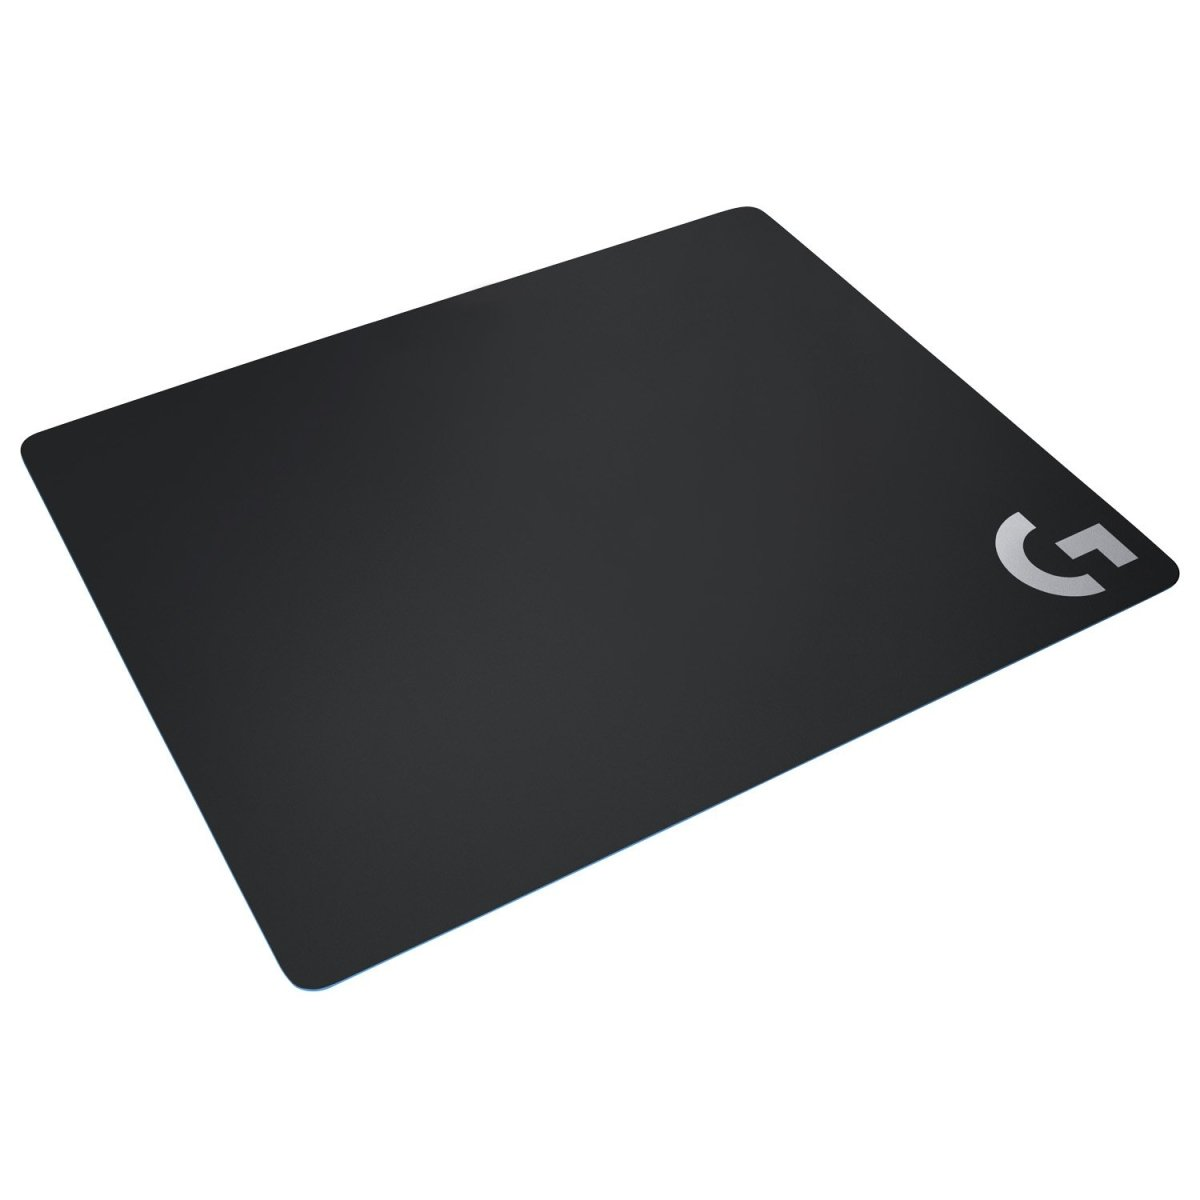 Mousepad Gamer Logitech G240 28x34 Cloth Speed - Mundo Electro